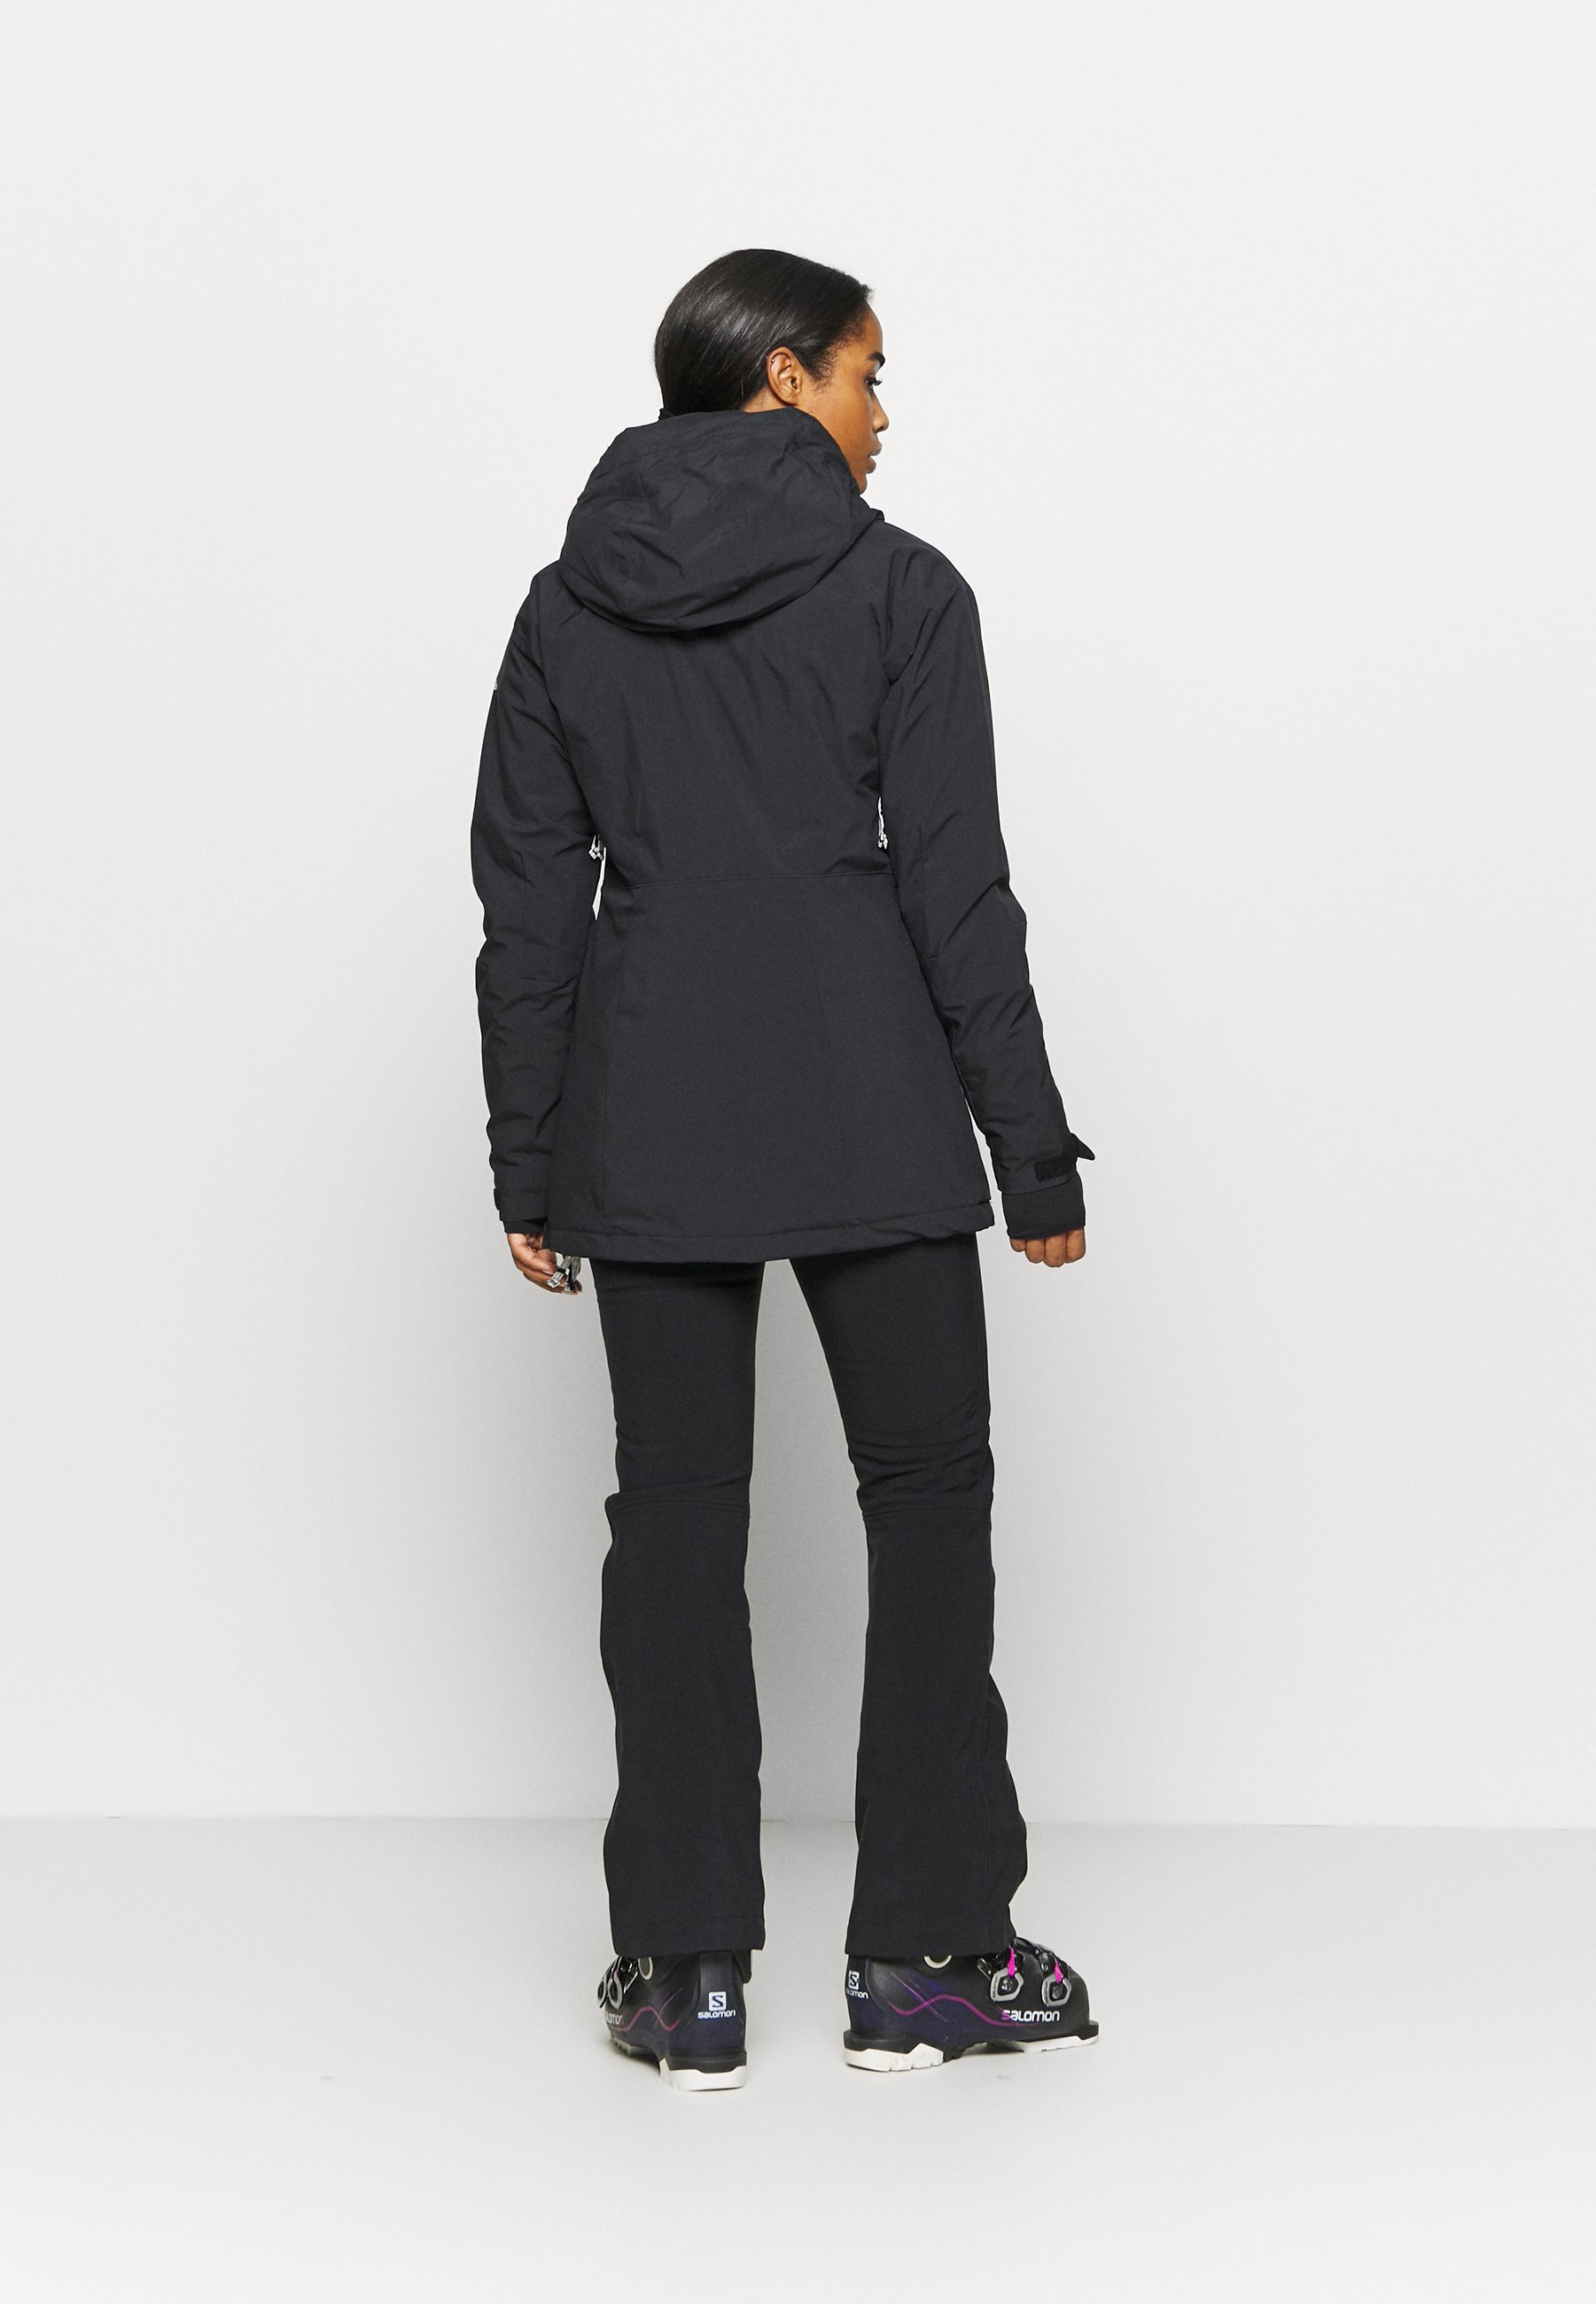 Columbia DUST ON CRUST INSULATED JACKET - Ski jacket - black snqTm